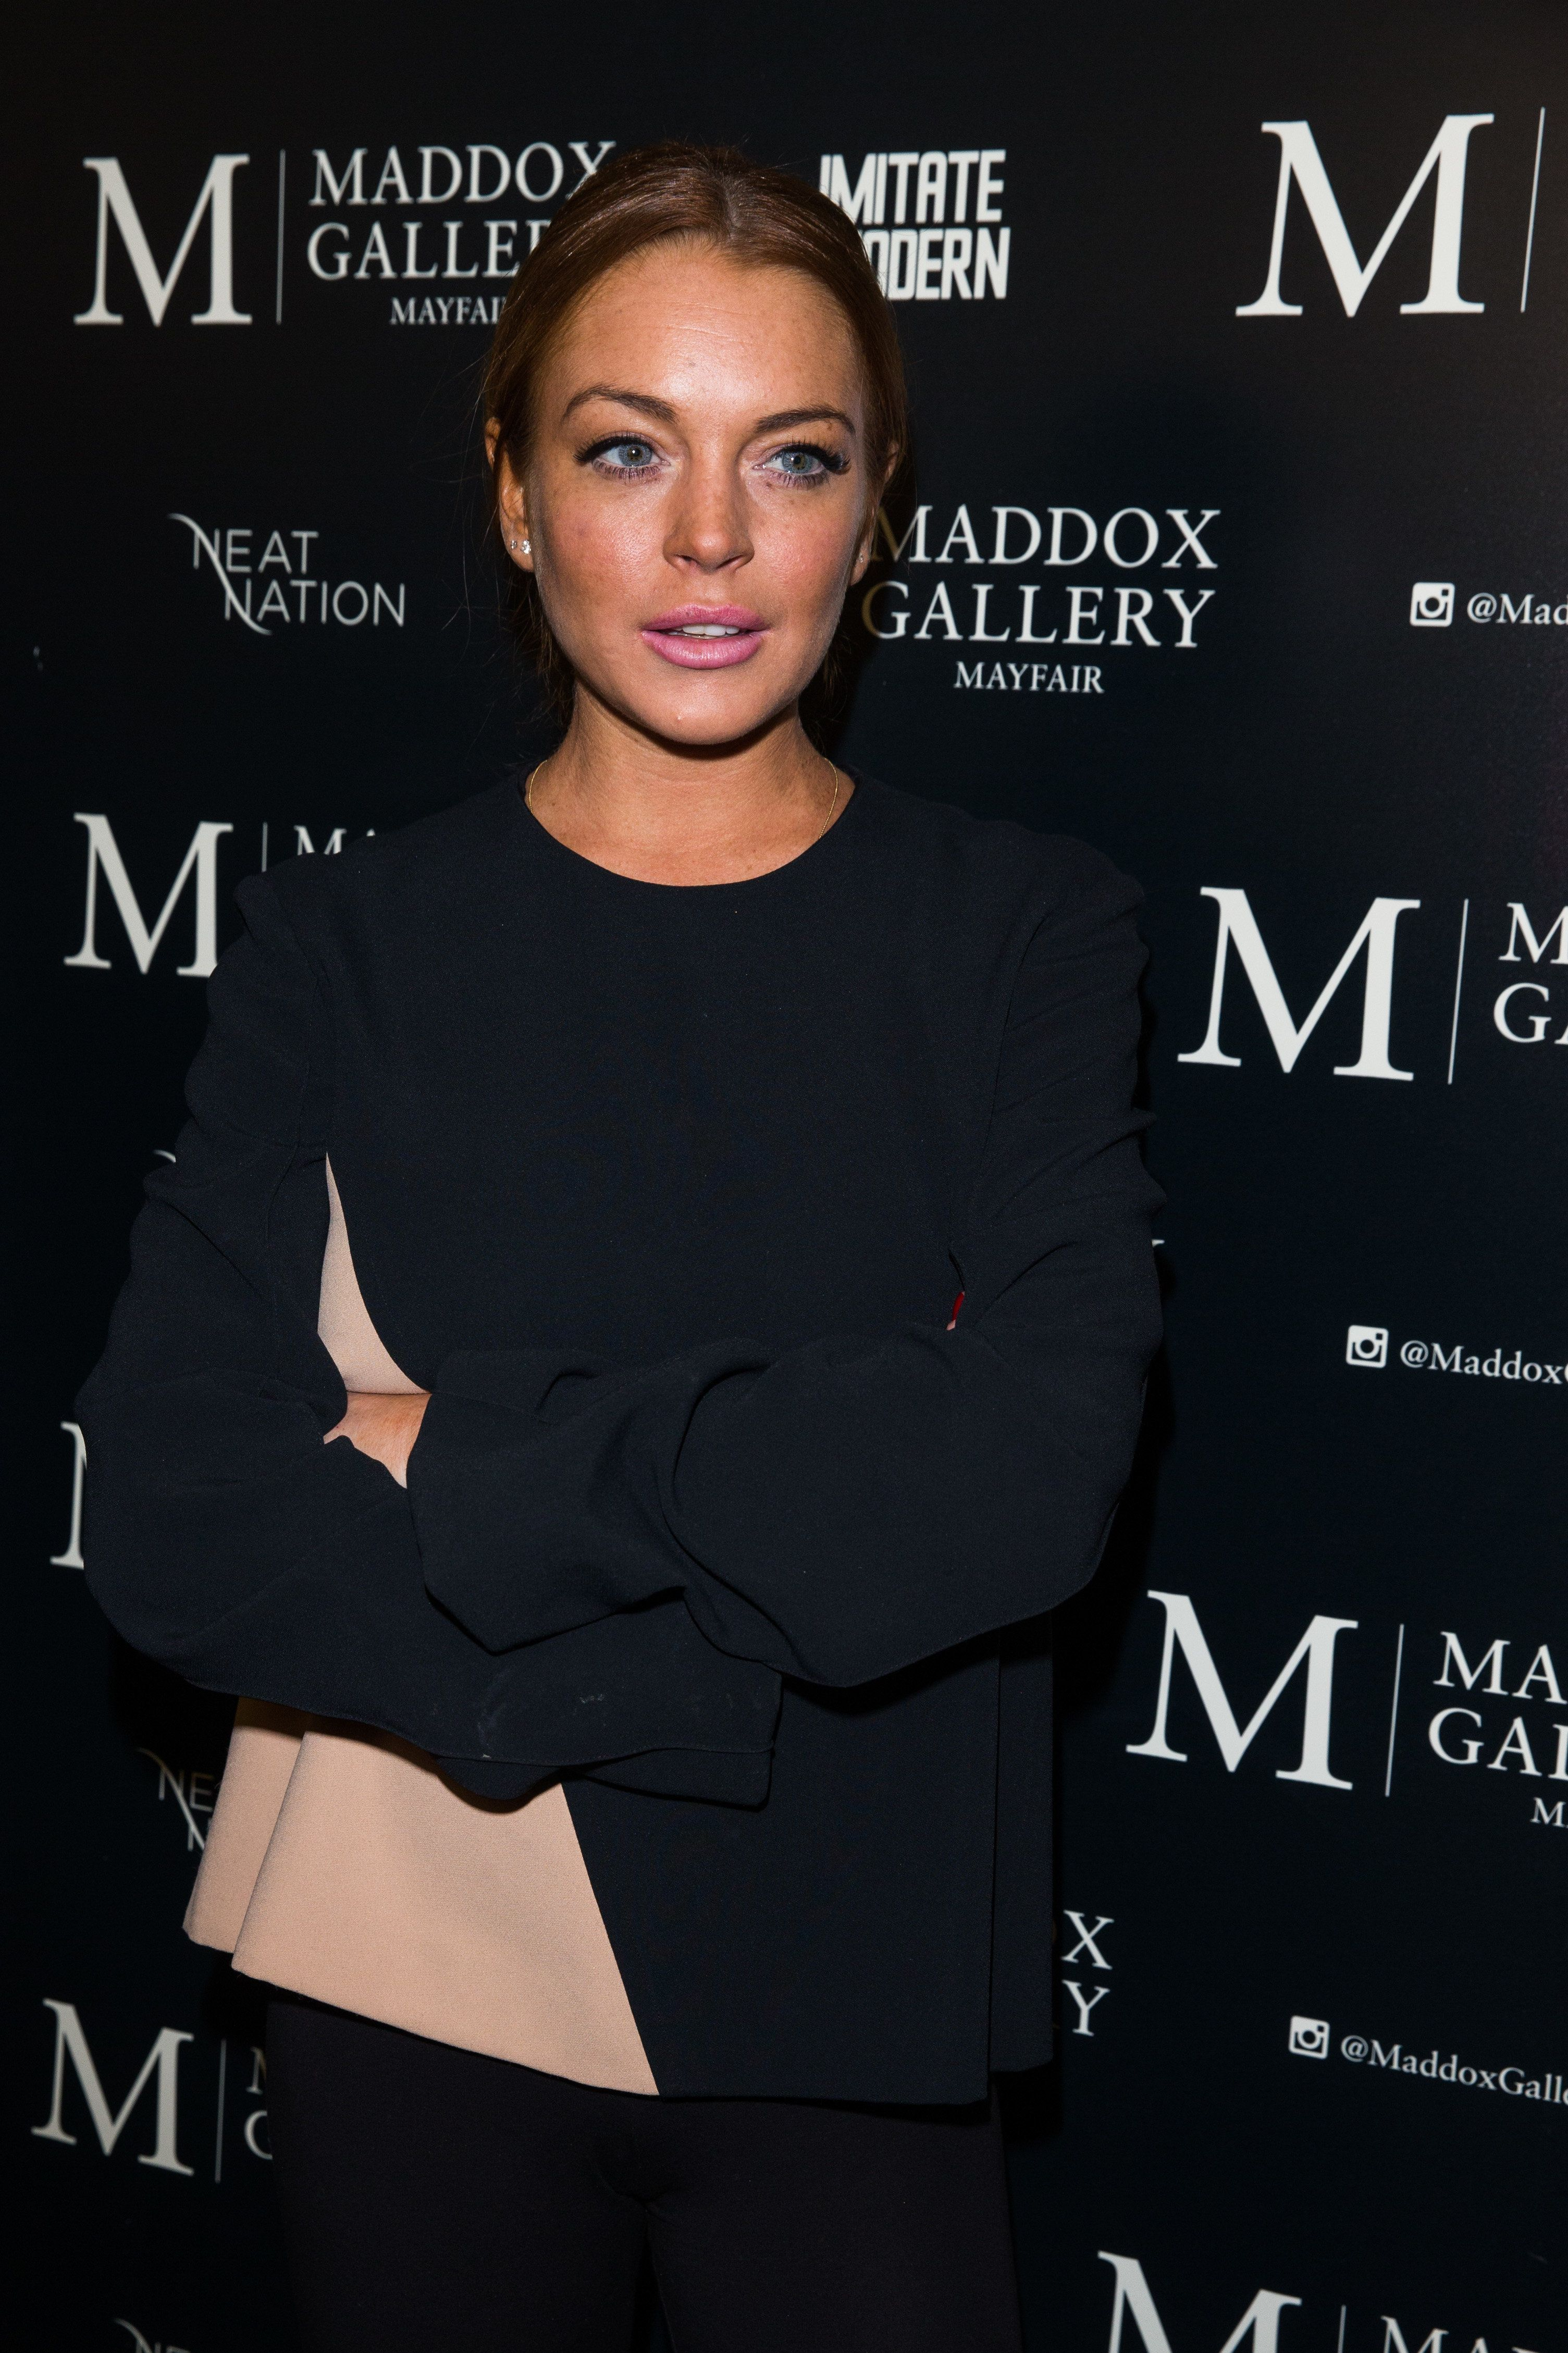 LONDON, ENGLAND - FEBRUARY 03:  Lindsay Lohan attends the private view of Tyler Shields: Decadence at Maddox Gallery on February 3, 2016 in London, England.  (Photo by Luca Teuchmann/Getty Images)